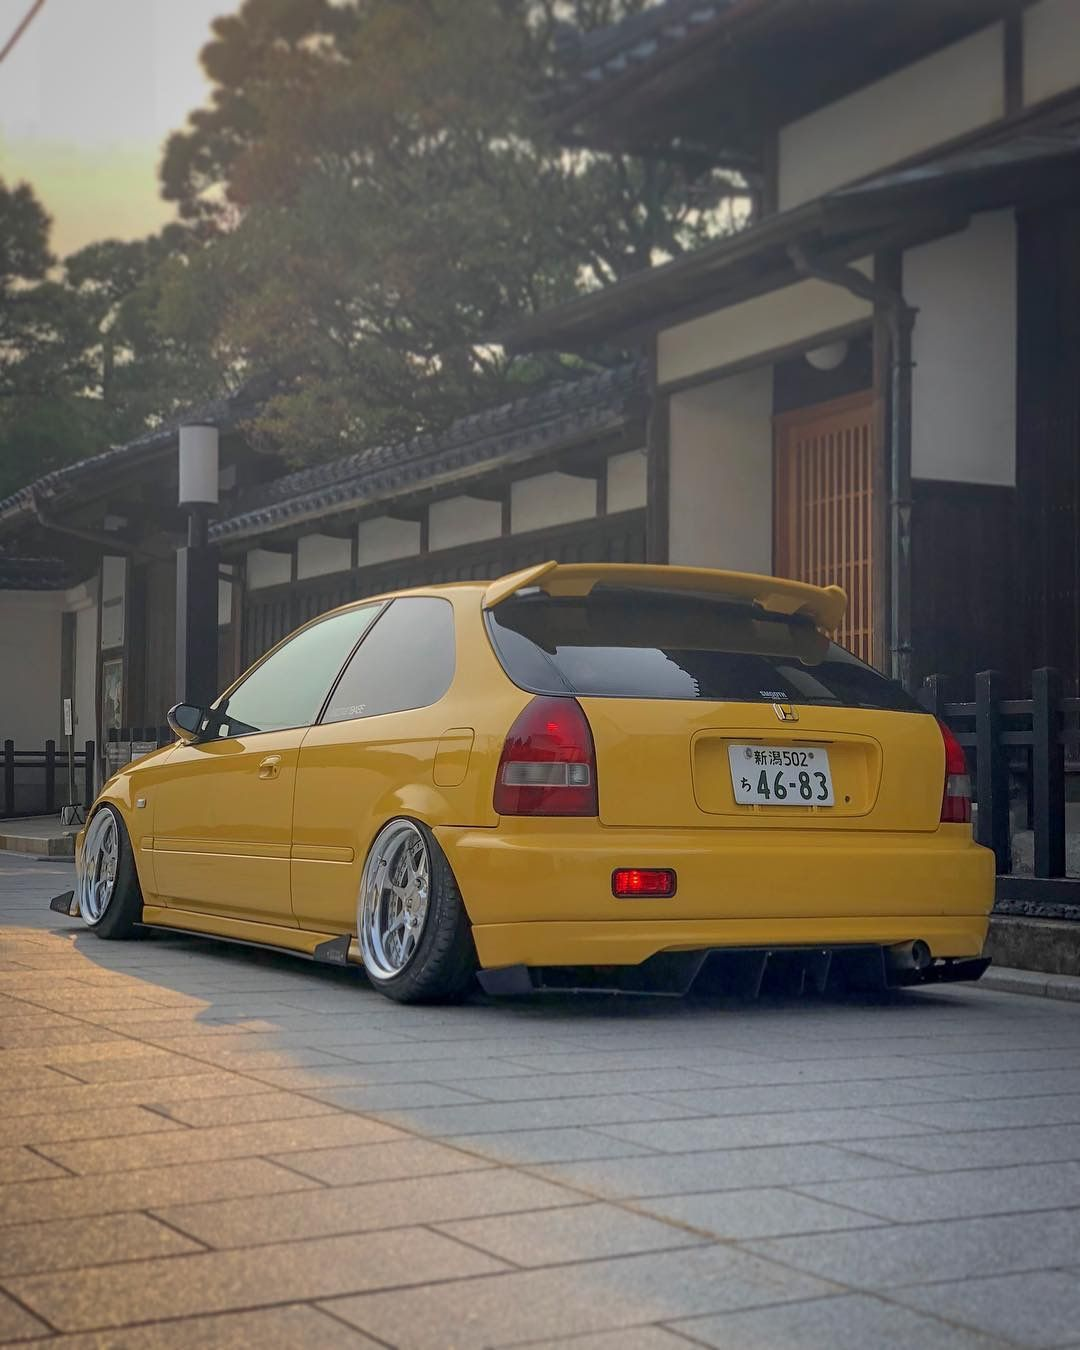 Yellow Ek9 The first Civic type R in the road Honda